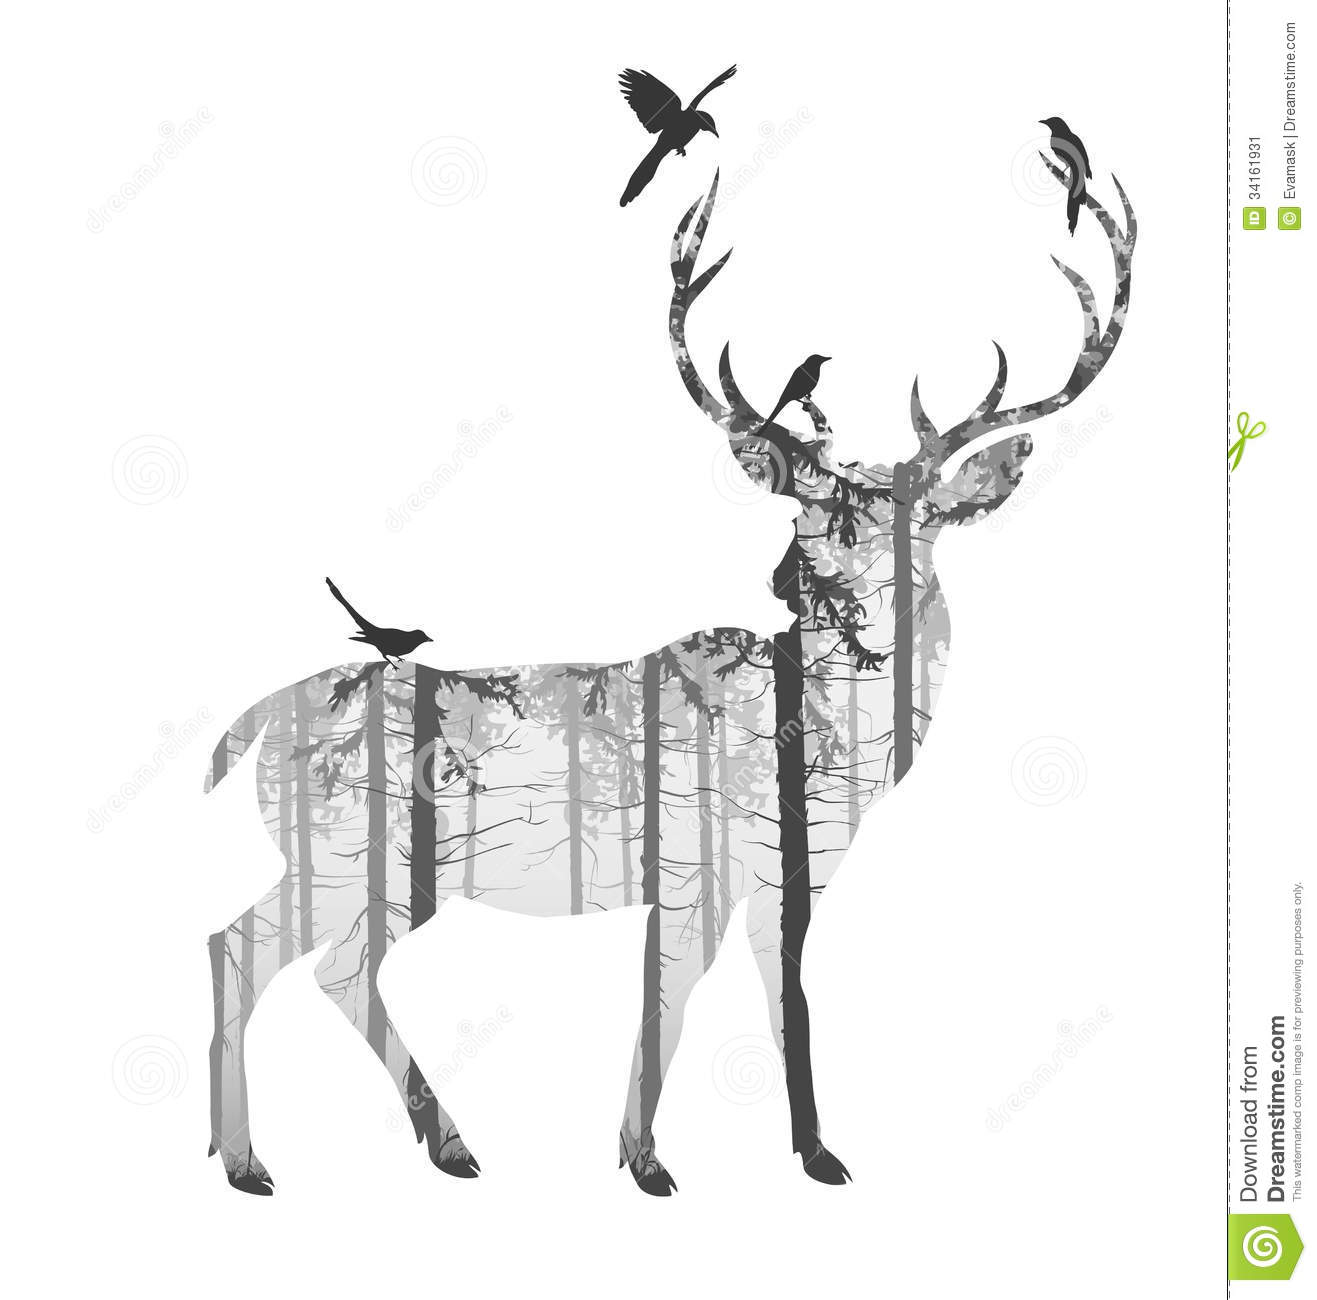 Pointer Dog Clipart as well How To Draw Max From The Grinch likewise Handmade Christmas Cards further Stock Illustration Dear Skull Dreamcatcher Lineart Beautiful Tattoo Art Vintage Deer Bull Elk Horns Antlers Branches Ornate Dream Catcher Image61633236 also Stock Image Deer Silhouette Pine Forest Birds Black White Colors White Background Illustration Image34161931. on antler drawing outlines